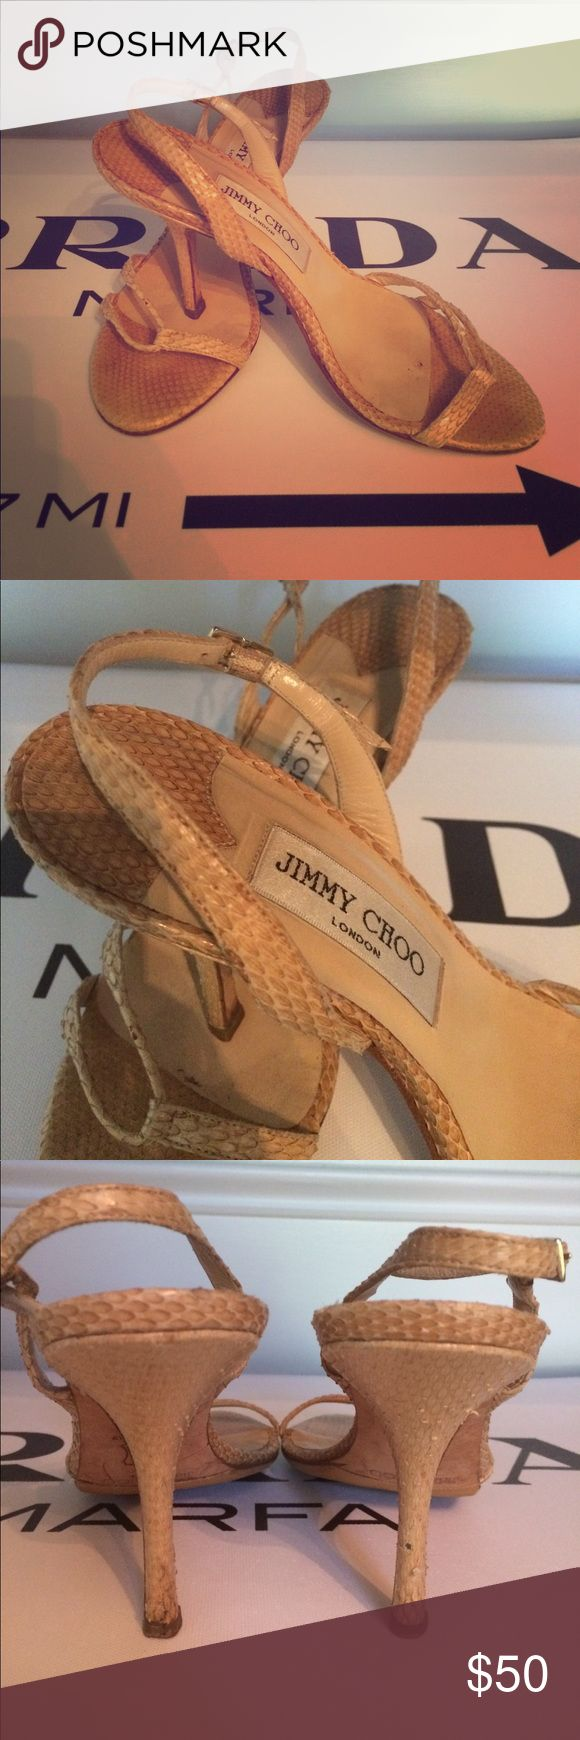 Jimmy Choo slingback sandal Very much loved but still pretty tan snakeskin sandal. Jimmy Choo Shoes Sandals